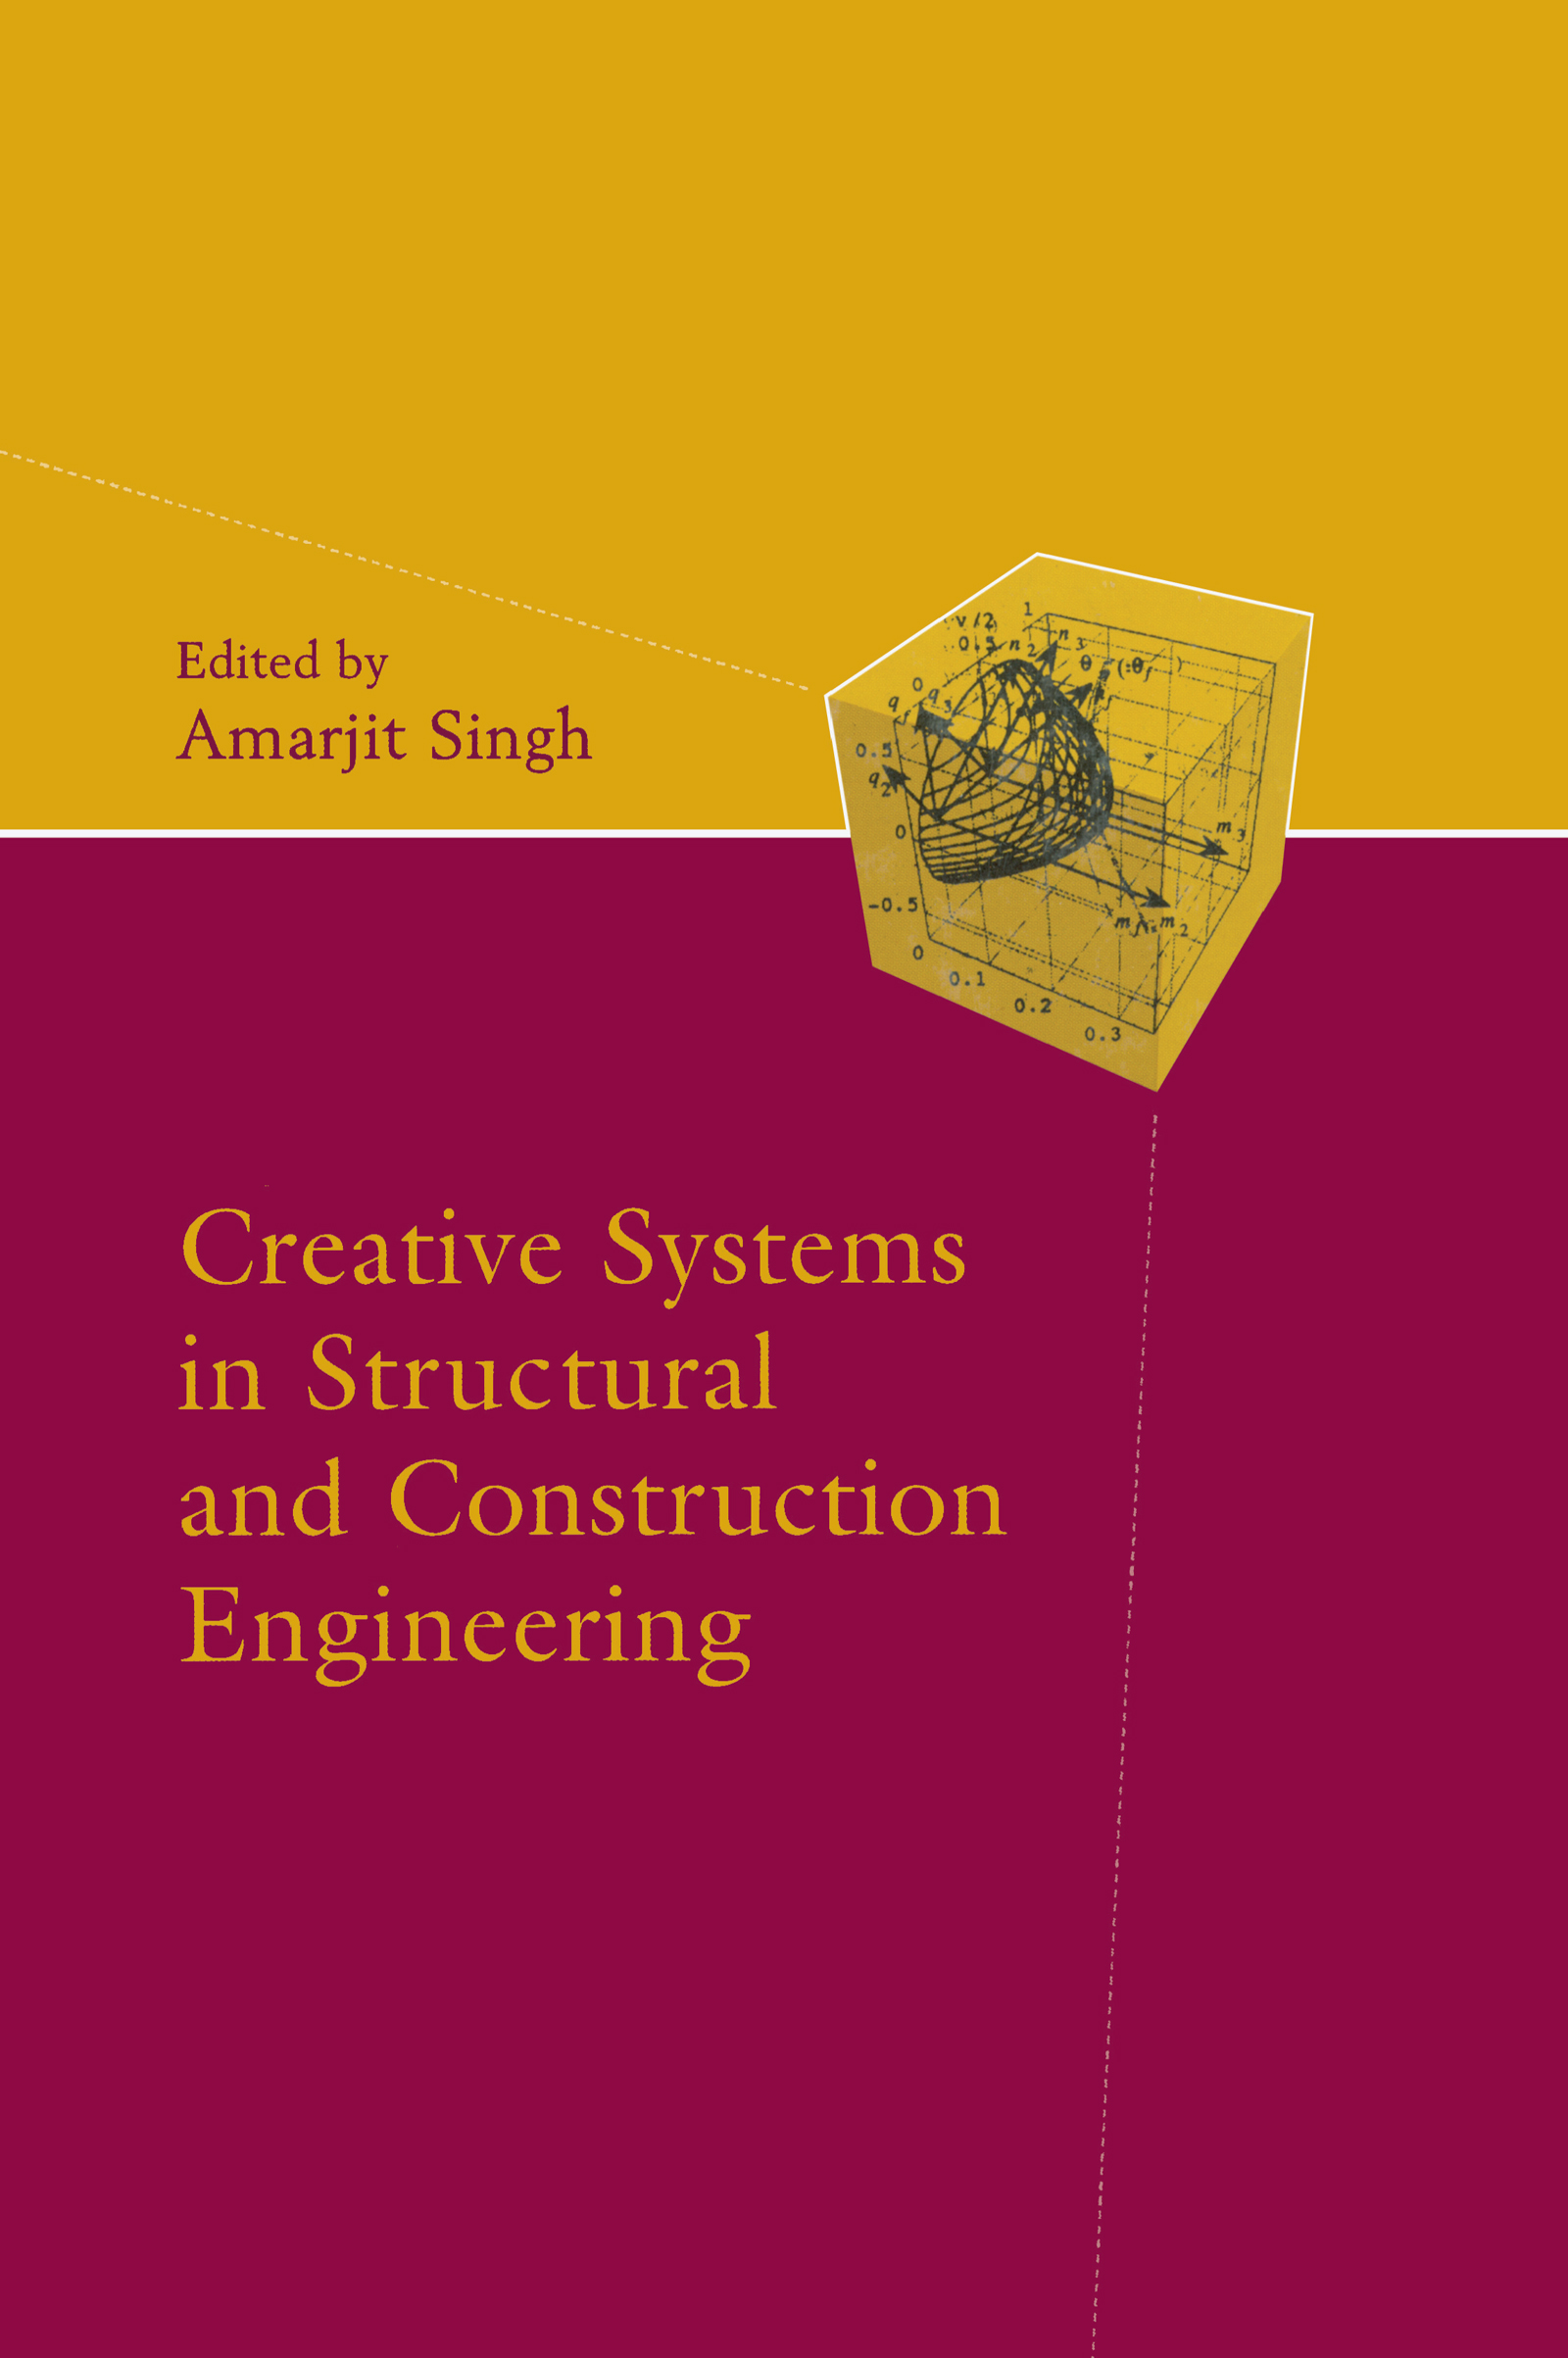 Creative Systems in Structural and Construction Engineering